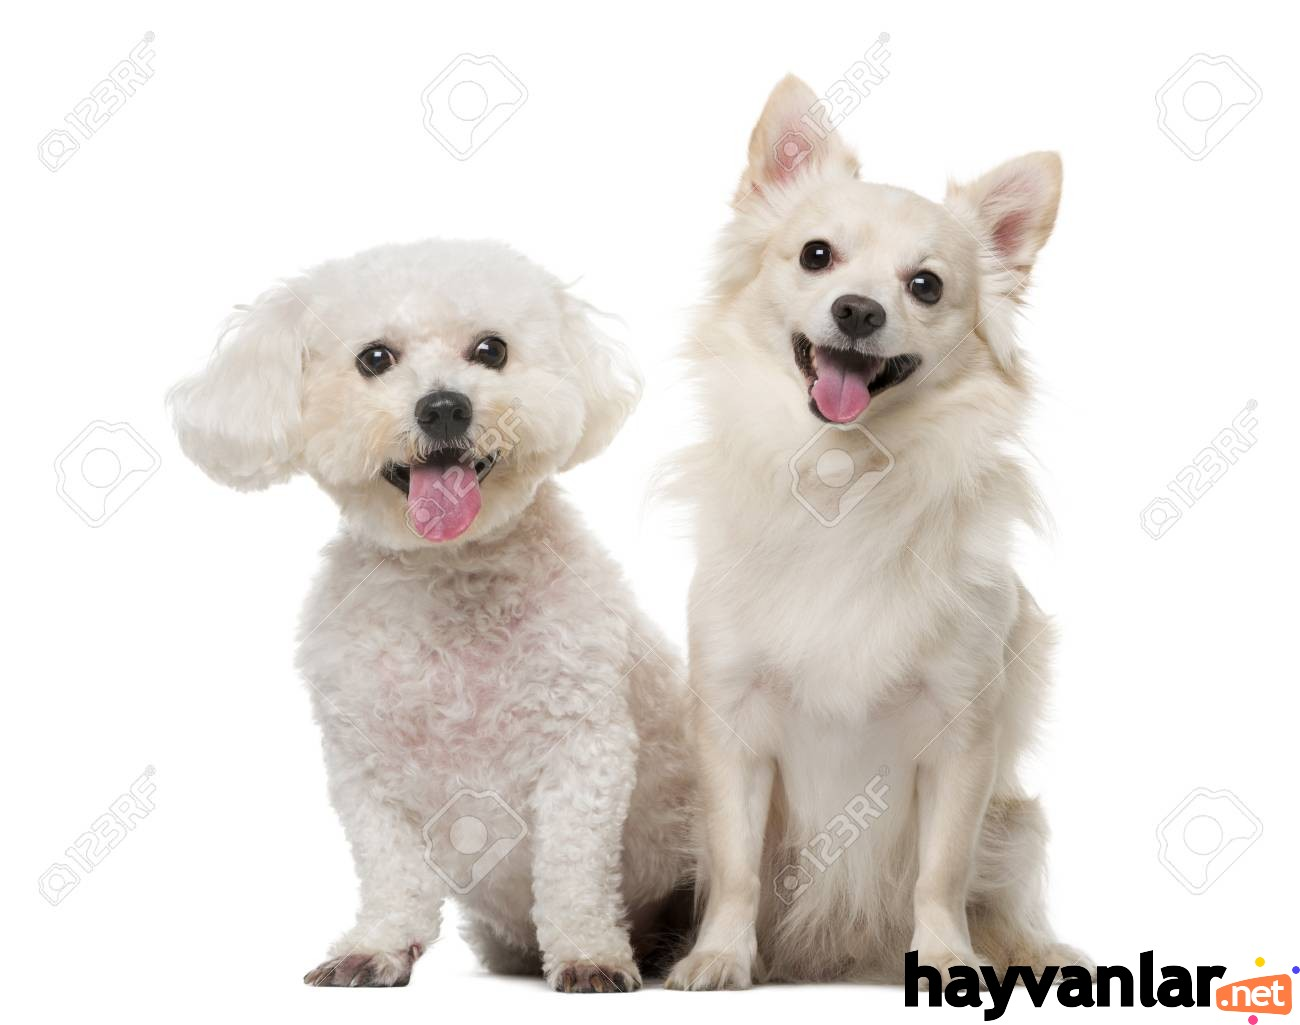 41957293-maltese-and-chihuahua-in-front-of-a-white-background.jpg